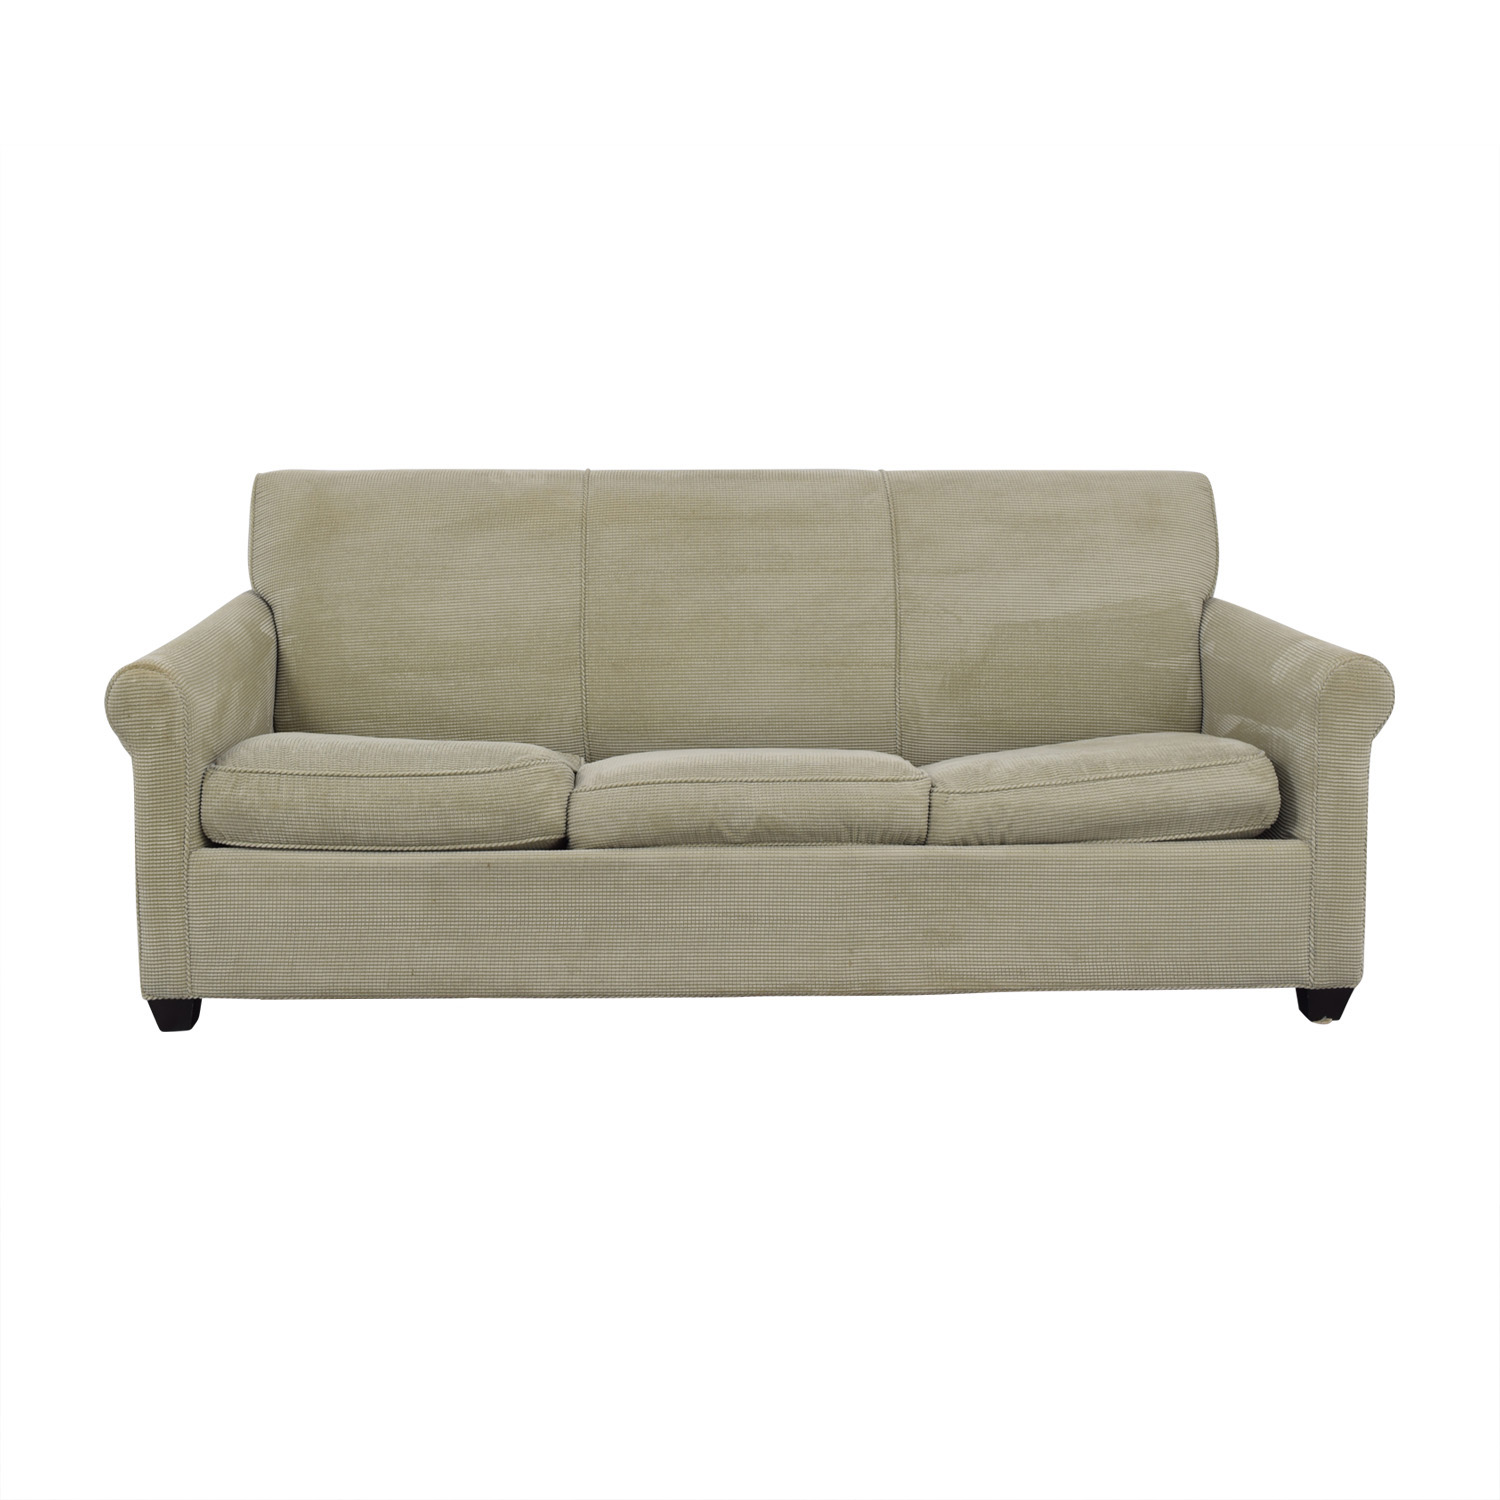 Crate & Barrel Crate & Barrel Gaines Full Sleeper Sofa Sofas